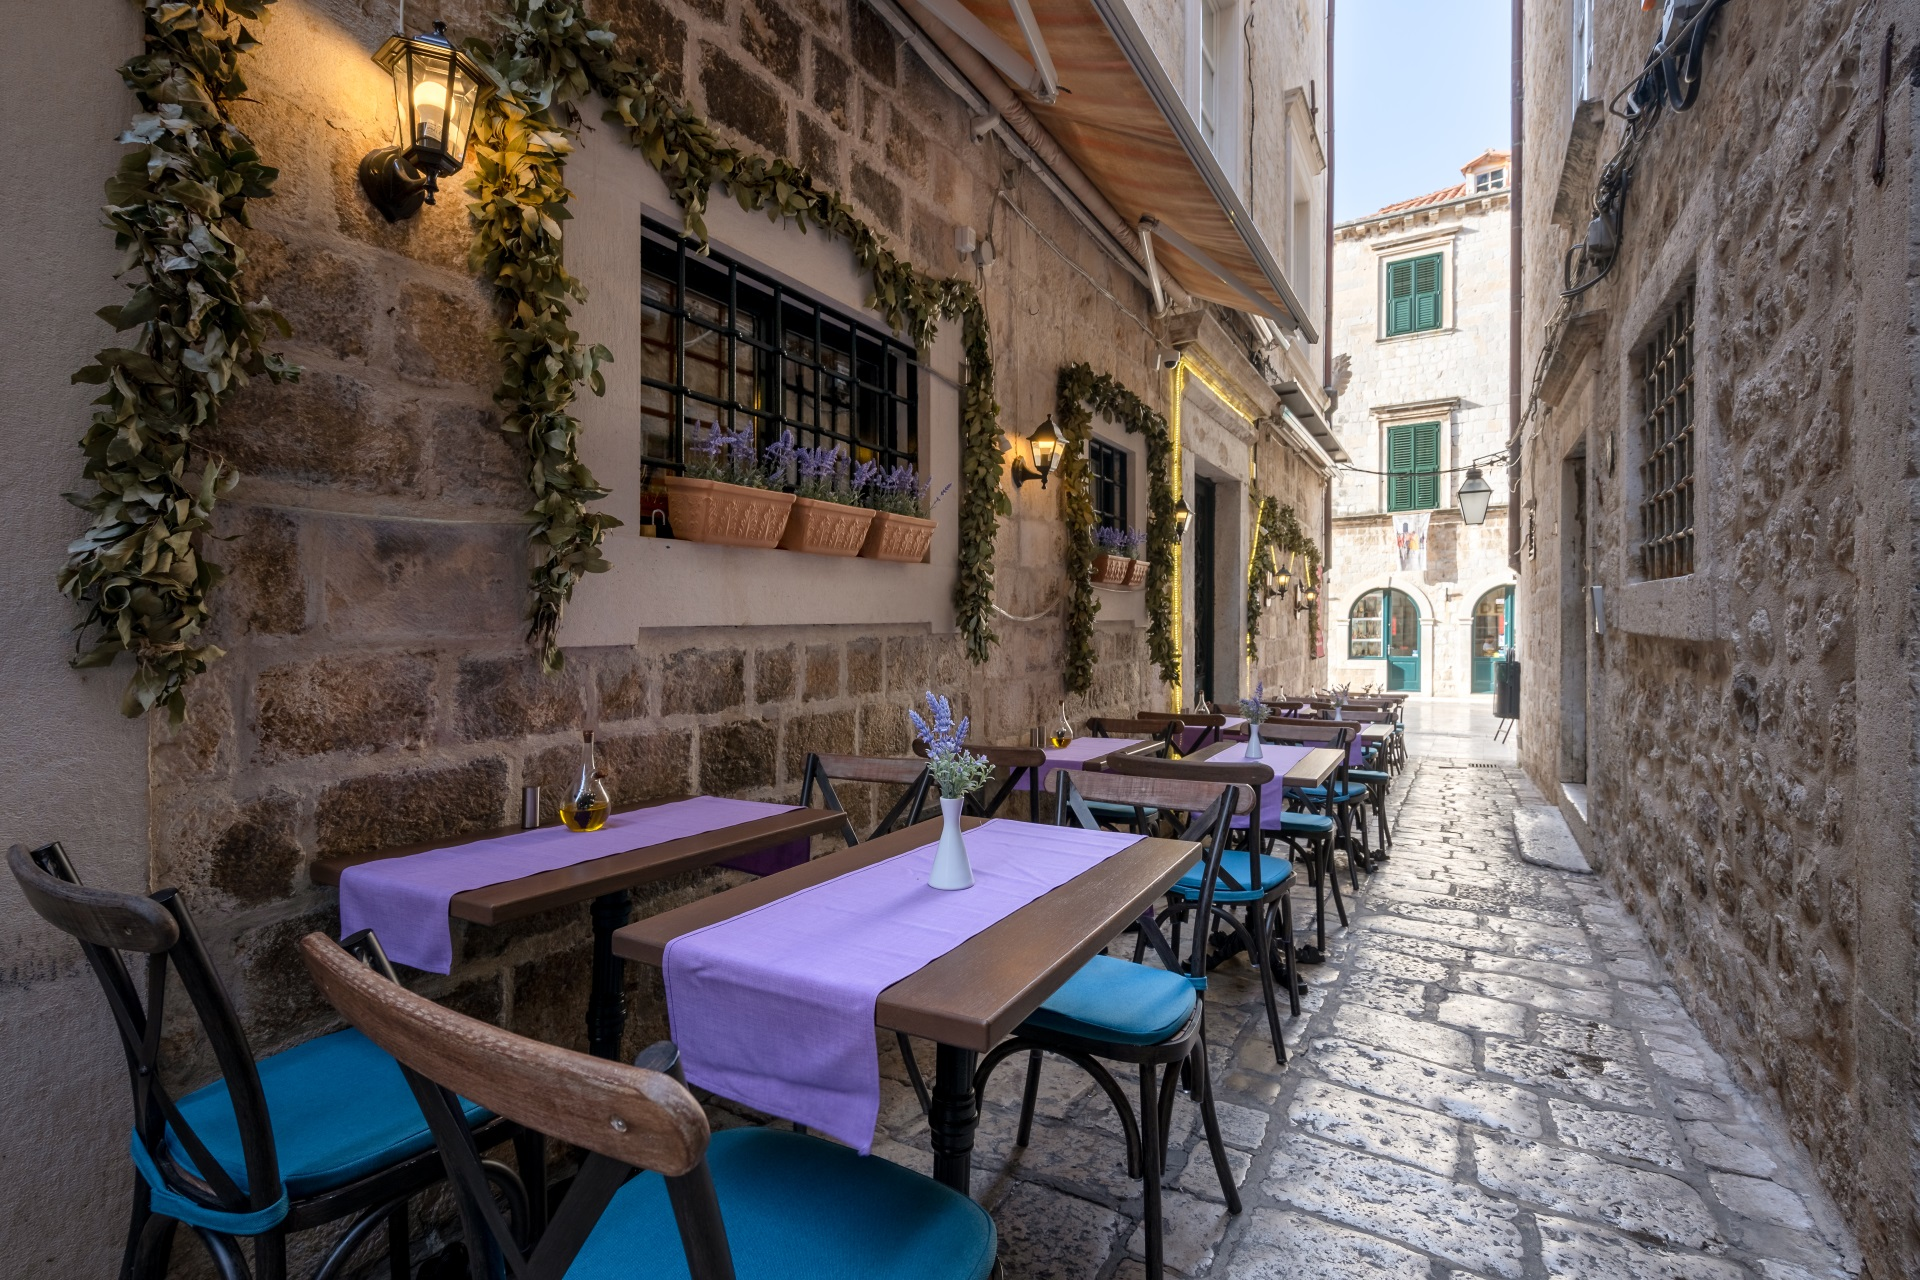 portun old town tables